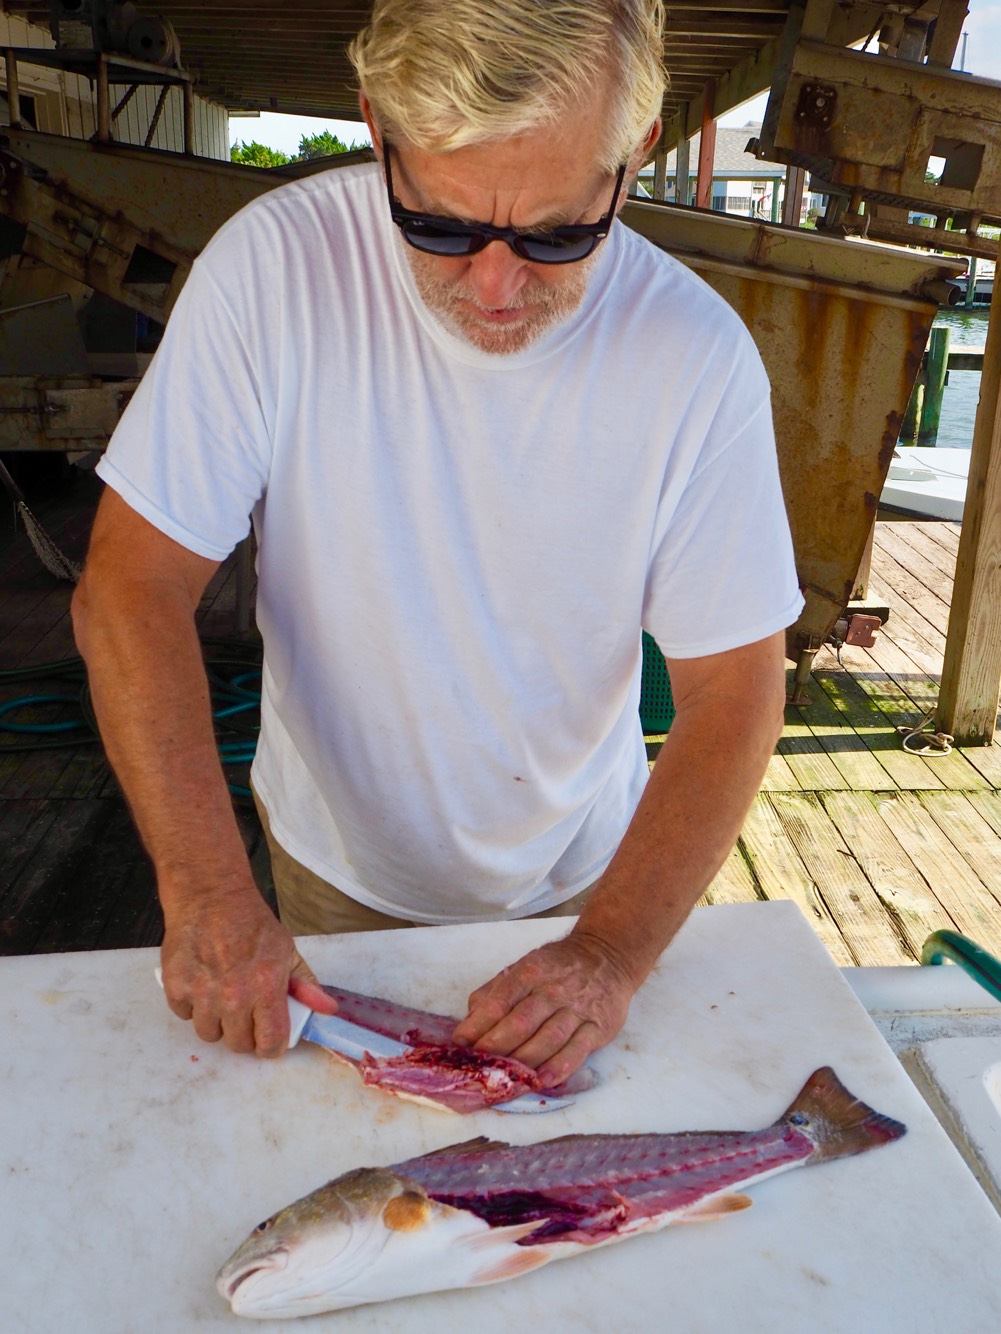 Hardy P. breaks down a Red Drum fish